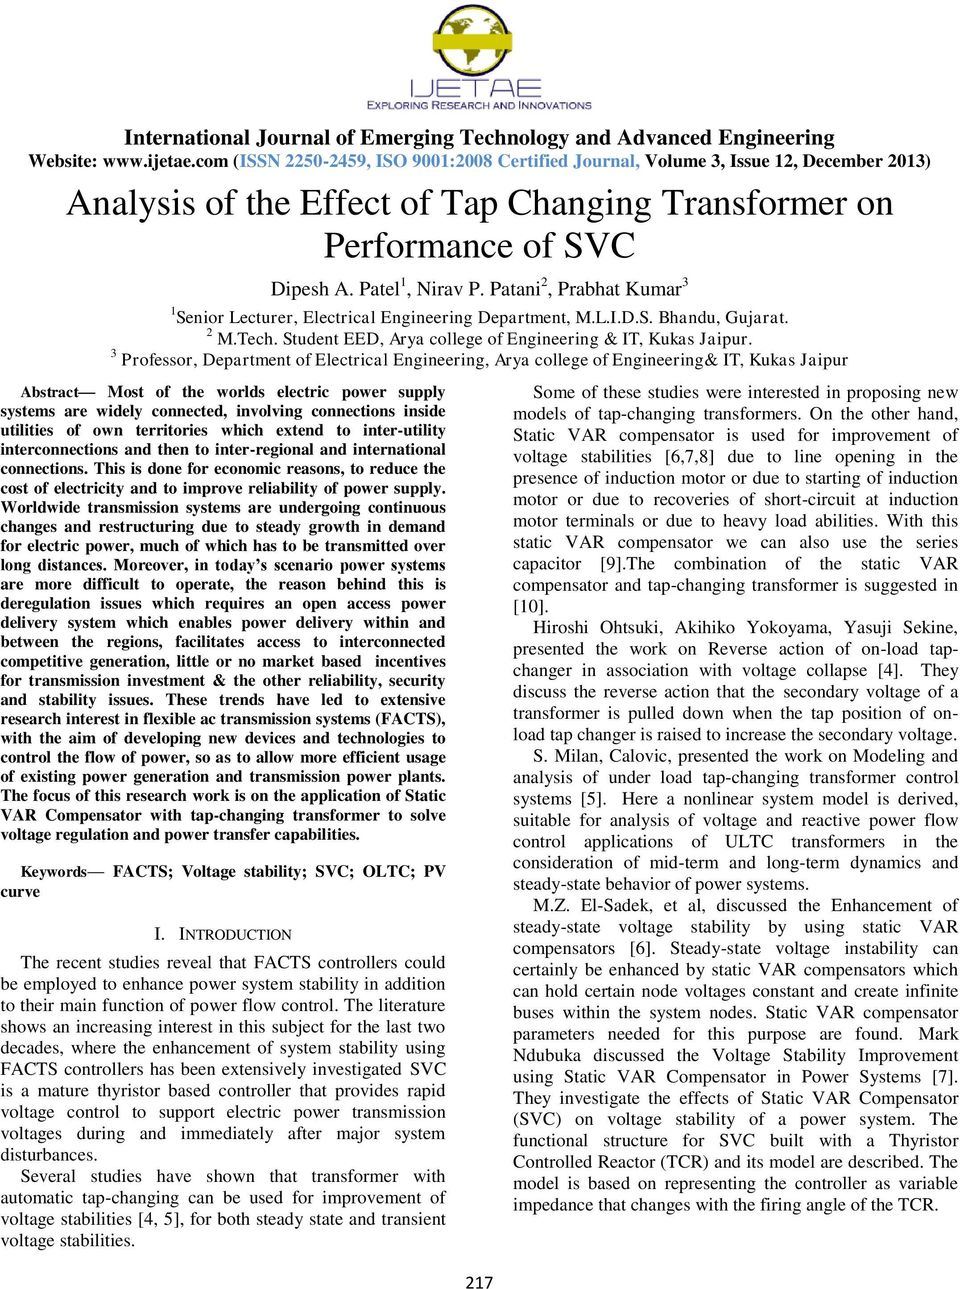 Analysis Of The Effect Tap Changing Transformer On Performance Pcbased Electric Power System Softwarepackage For 3 Professor Department Electrical Engineering Arya College It Kukas Jaipur